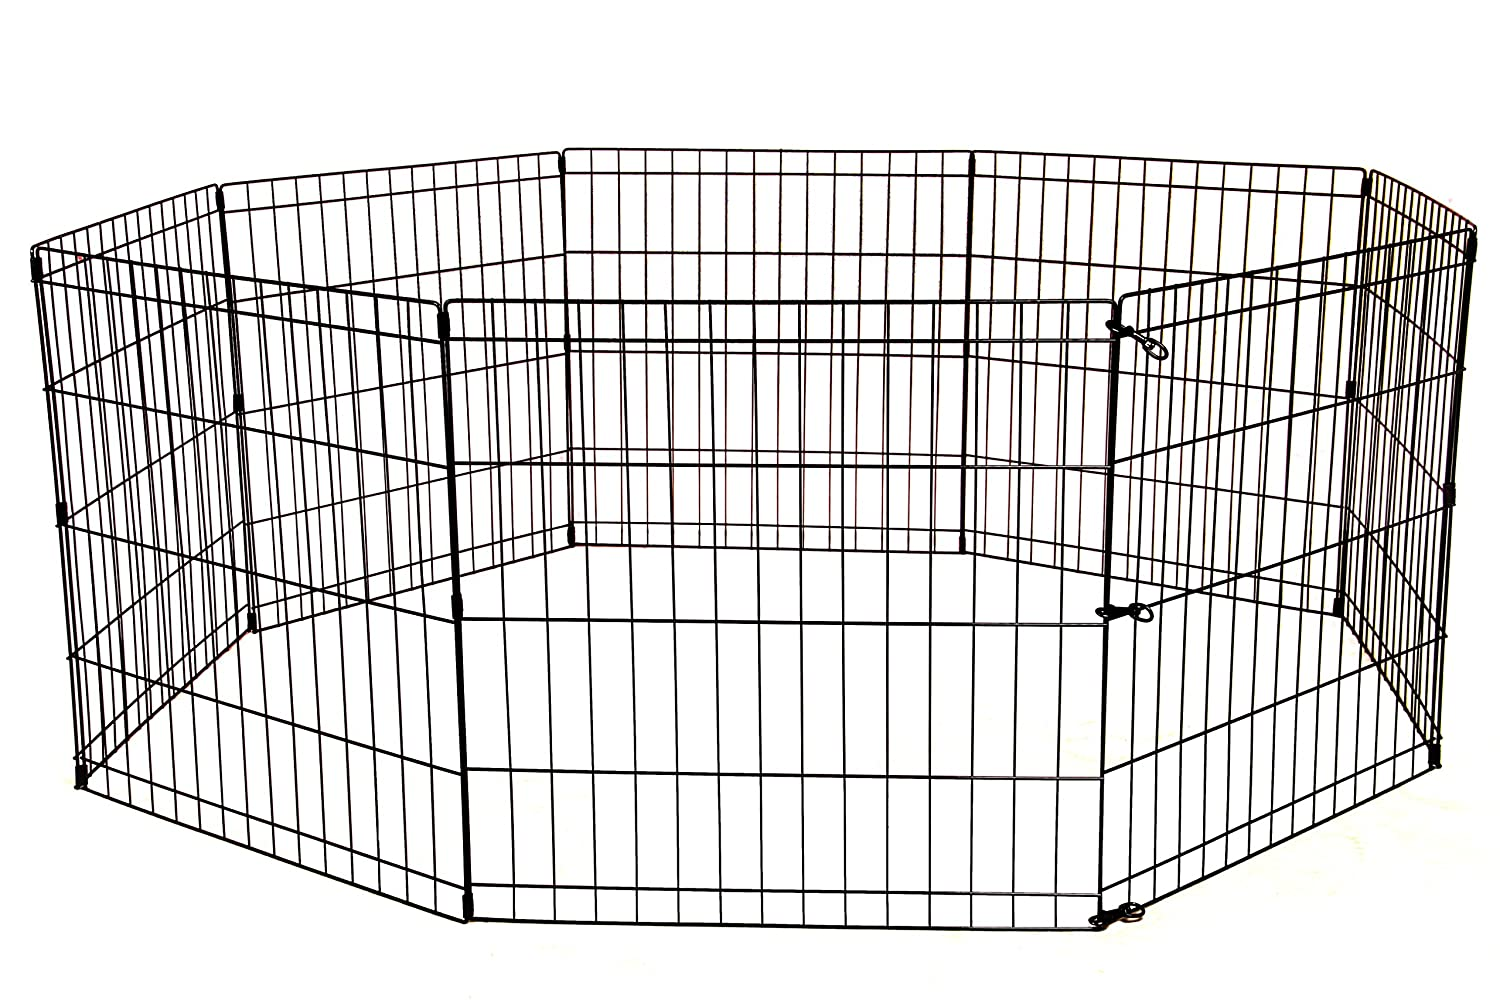 Amazon.com : Tall Dog Playpen Crate Fence Pet Kennel Play Pen ...